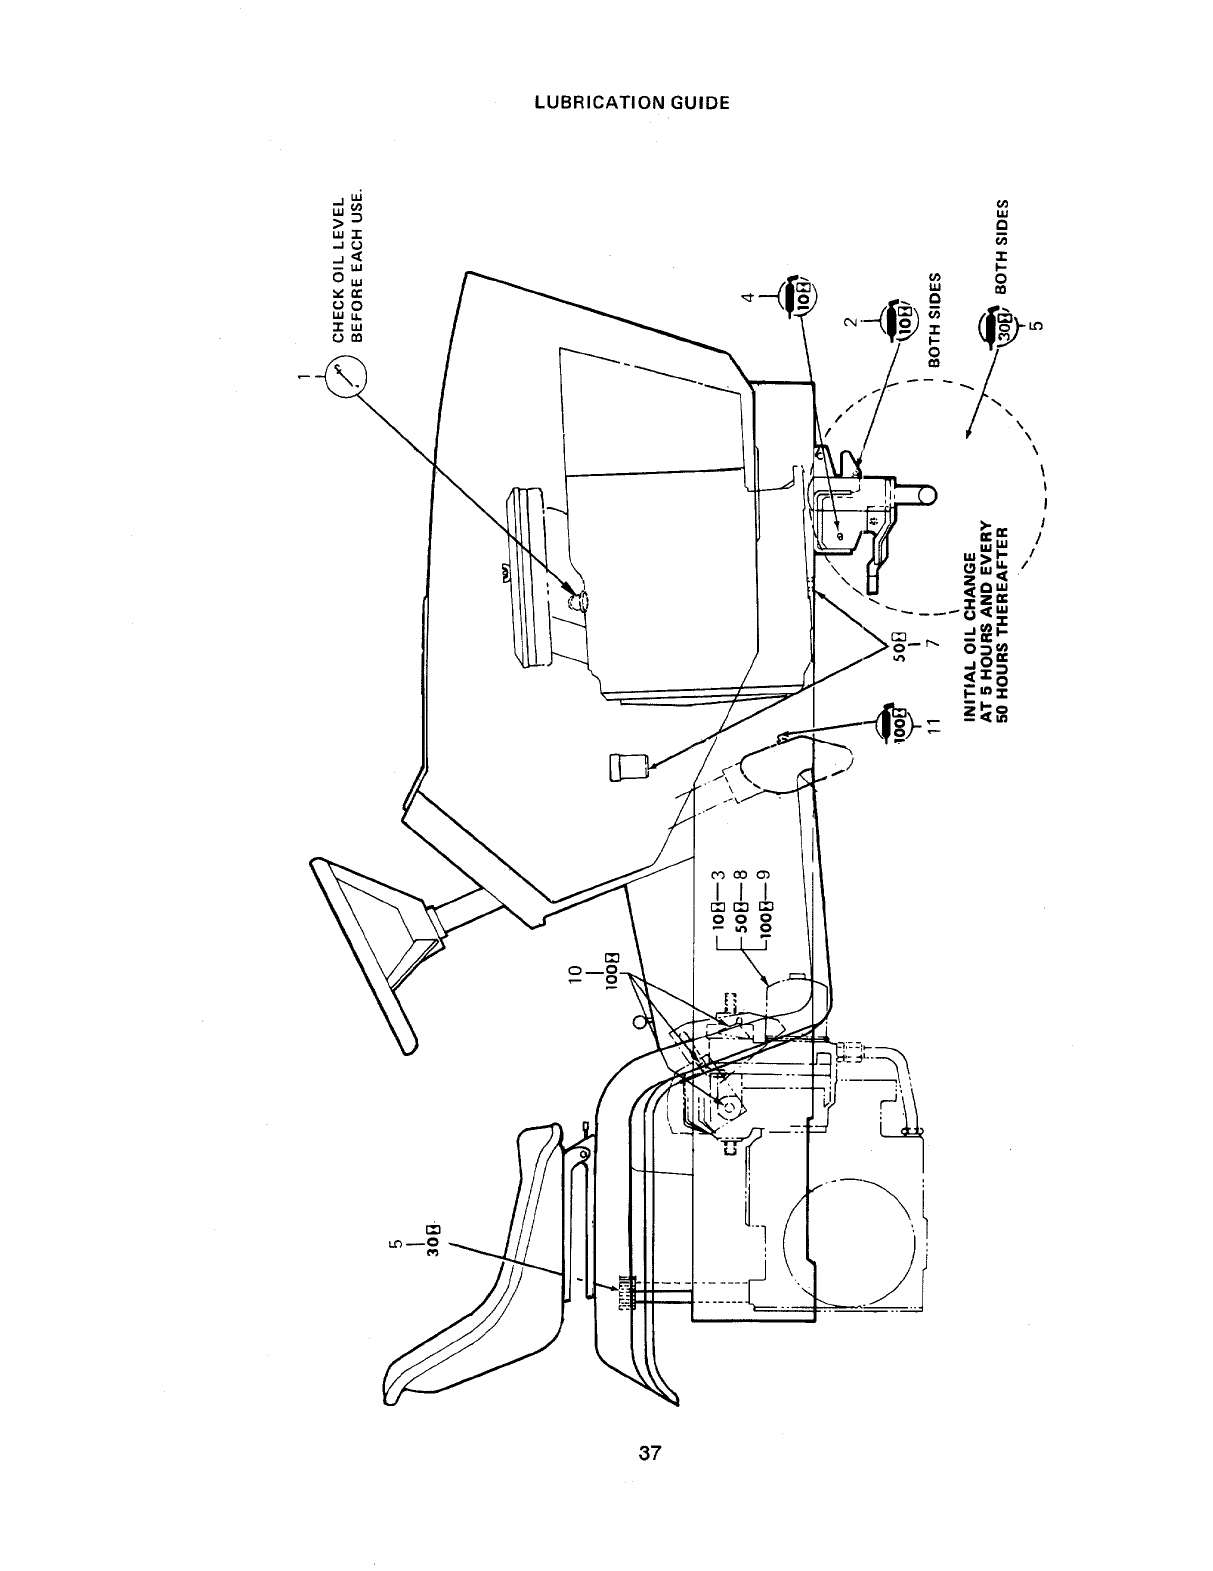 Page 37 of Cub Cadet Lawn Mower 1541 User Guide